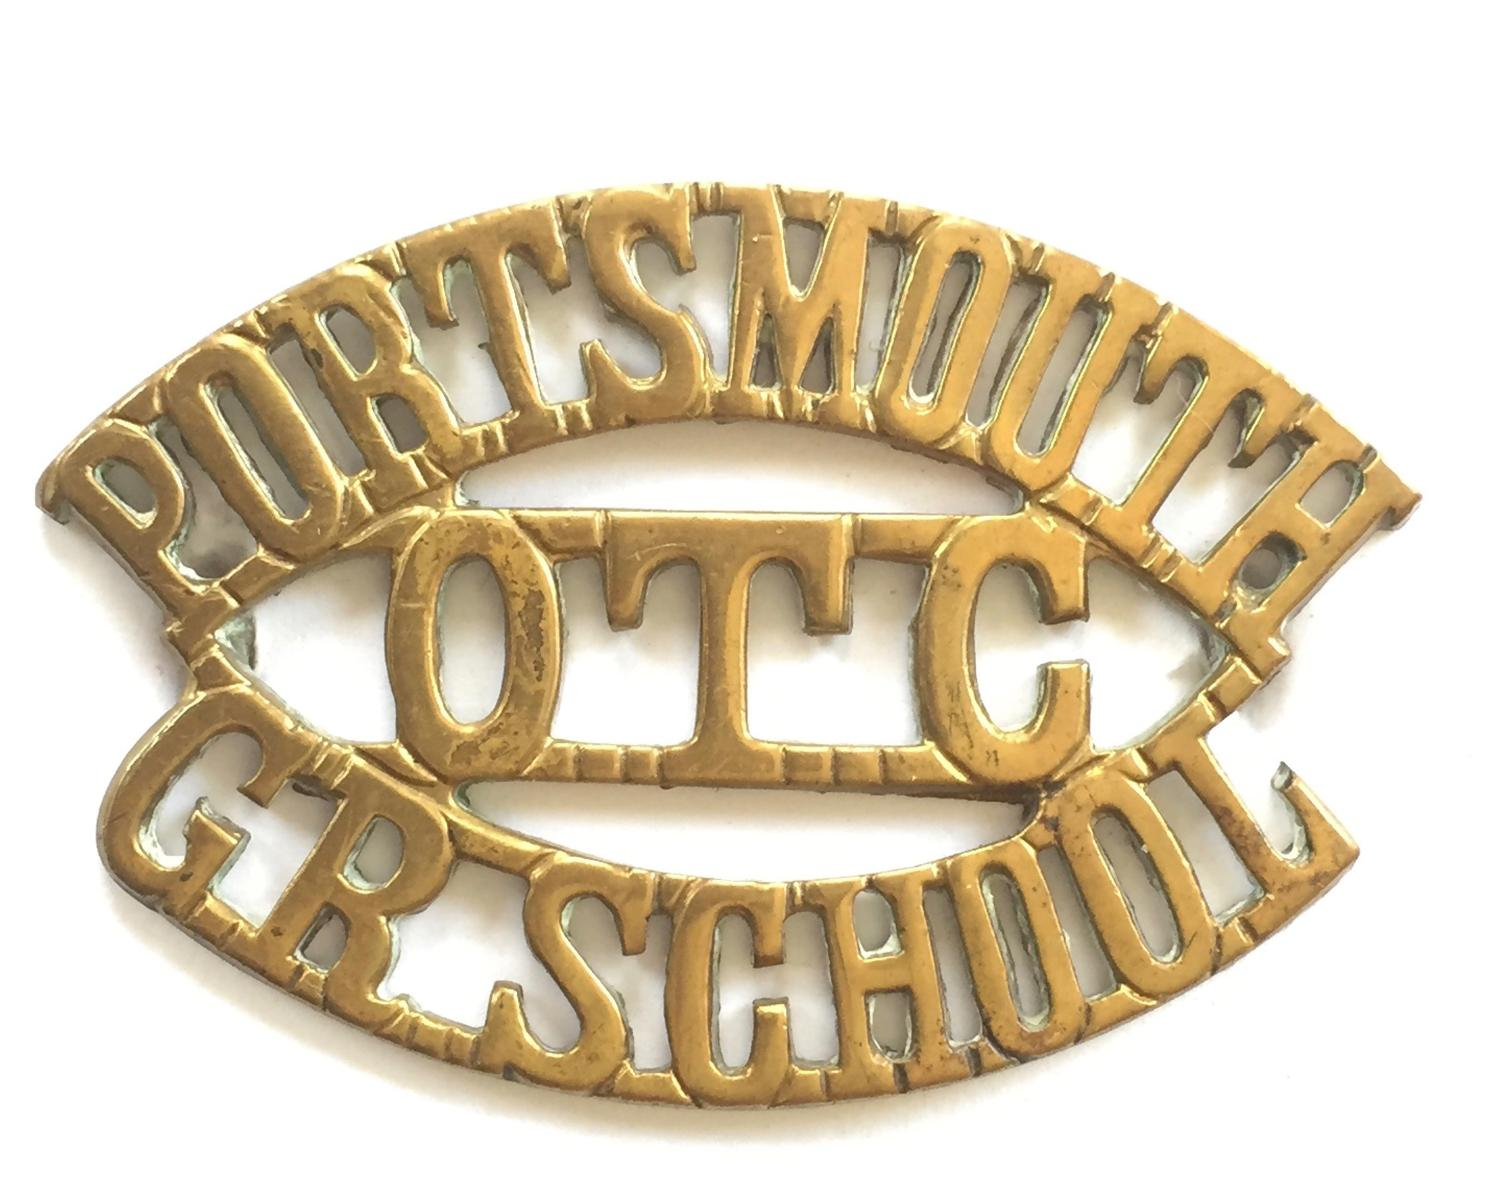 PORTSMOUTH / OTC / GR.SCHOOL shoulder title